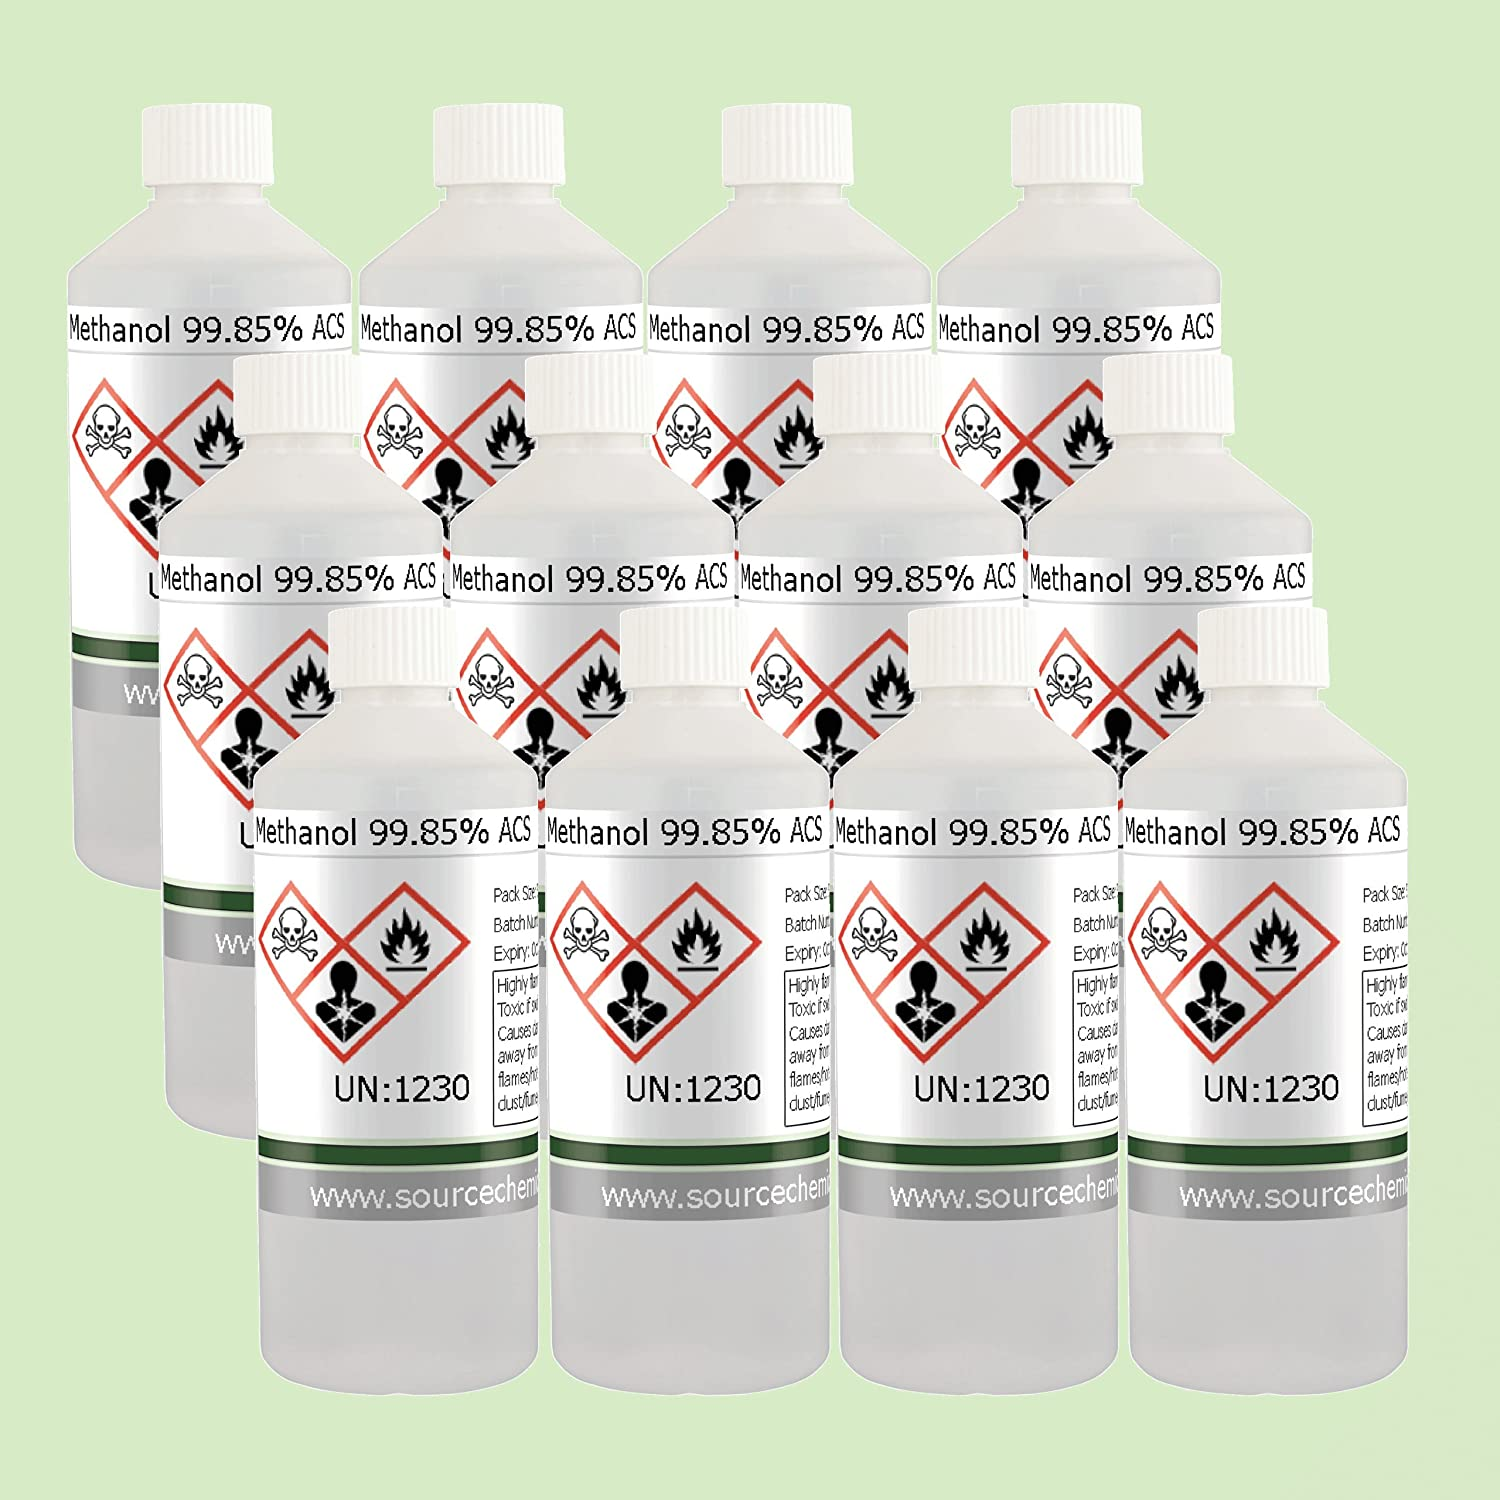 Methanol (Methyl Alcohol) 12 x 500ml (6L) Including Courier Delivery Source Chemicals M-12X500-IT